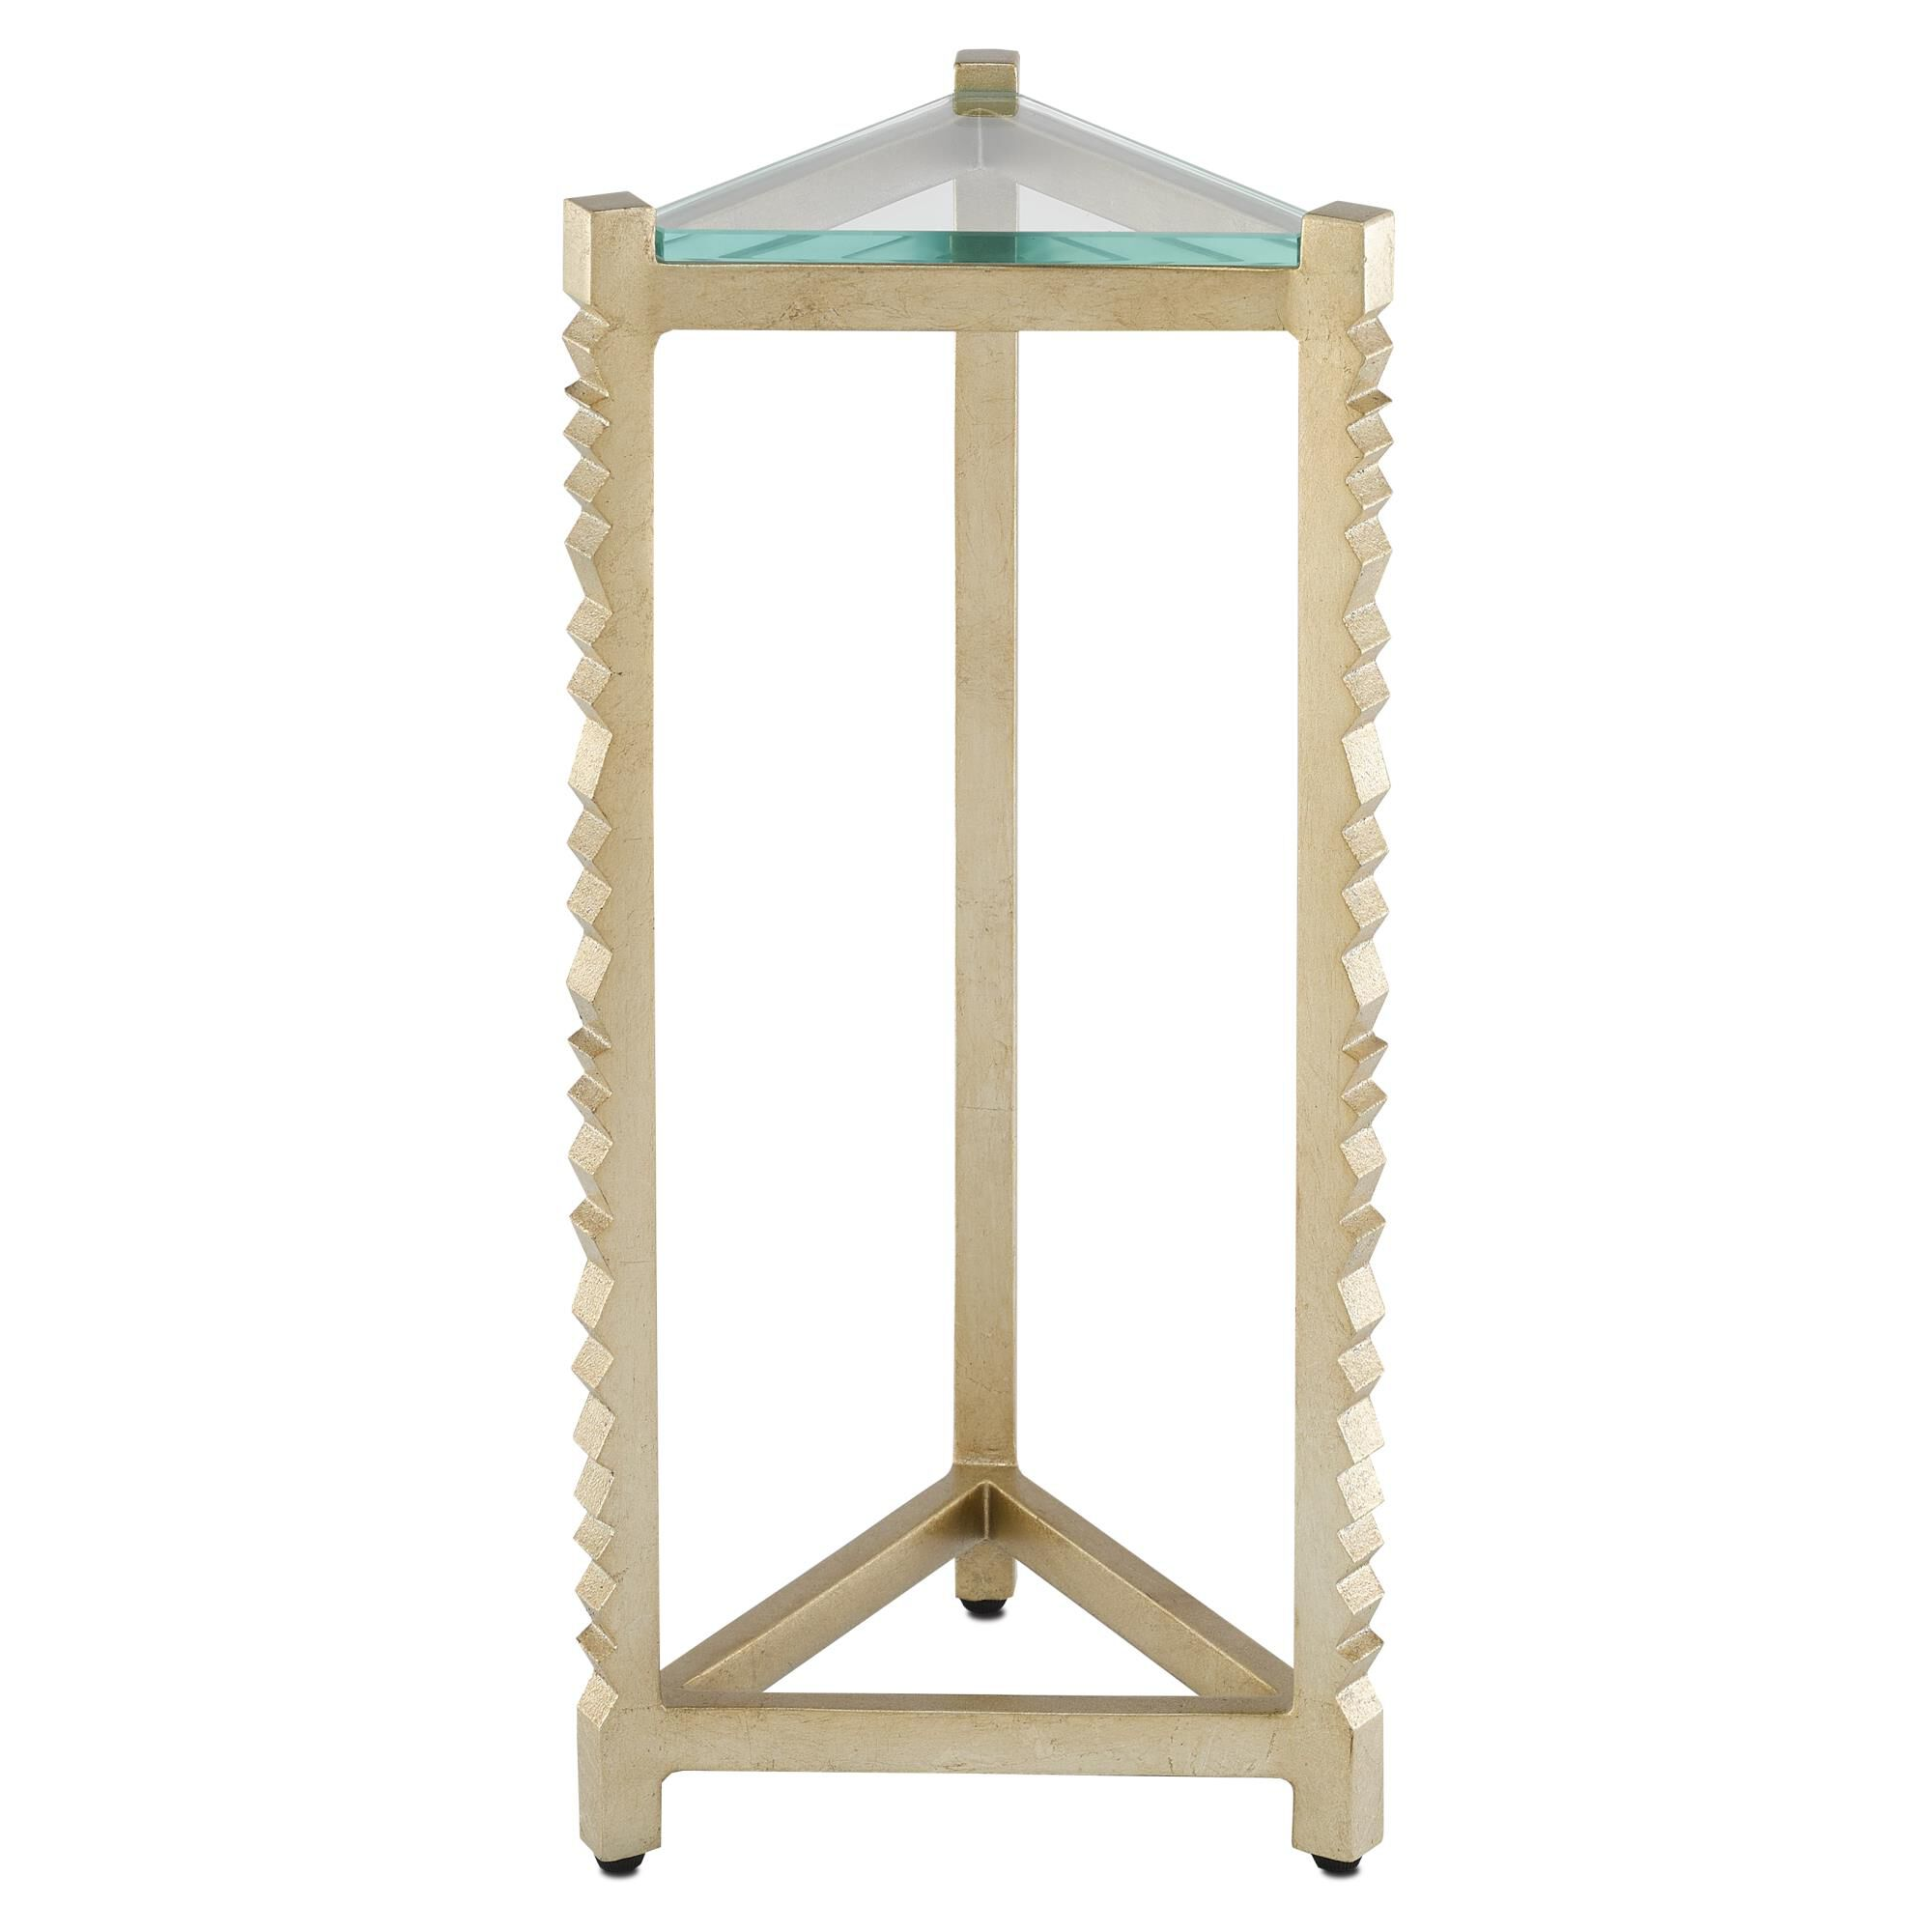 Currey and Company Levi Accent Table Levi - 4000-0093 - Industrial